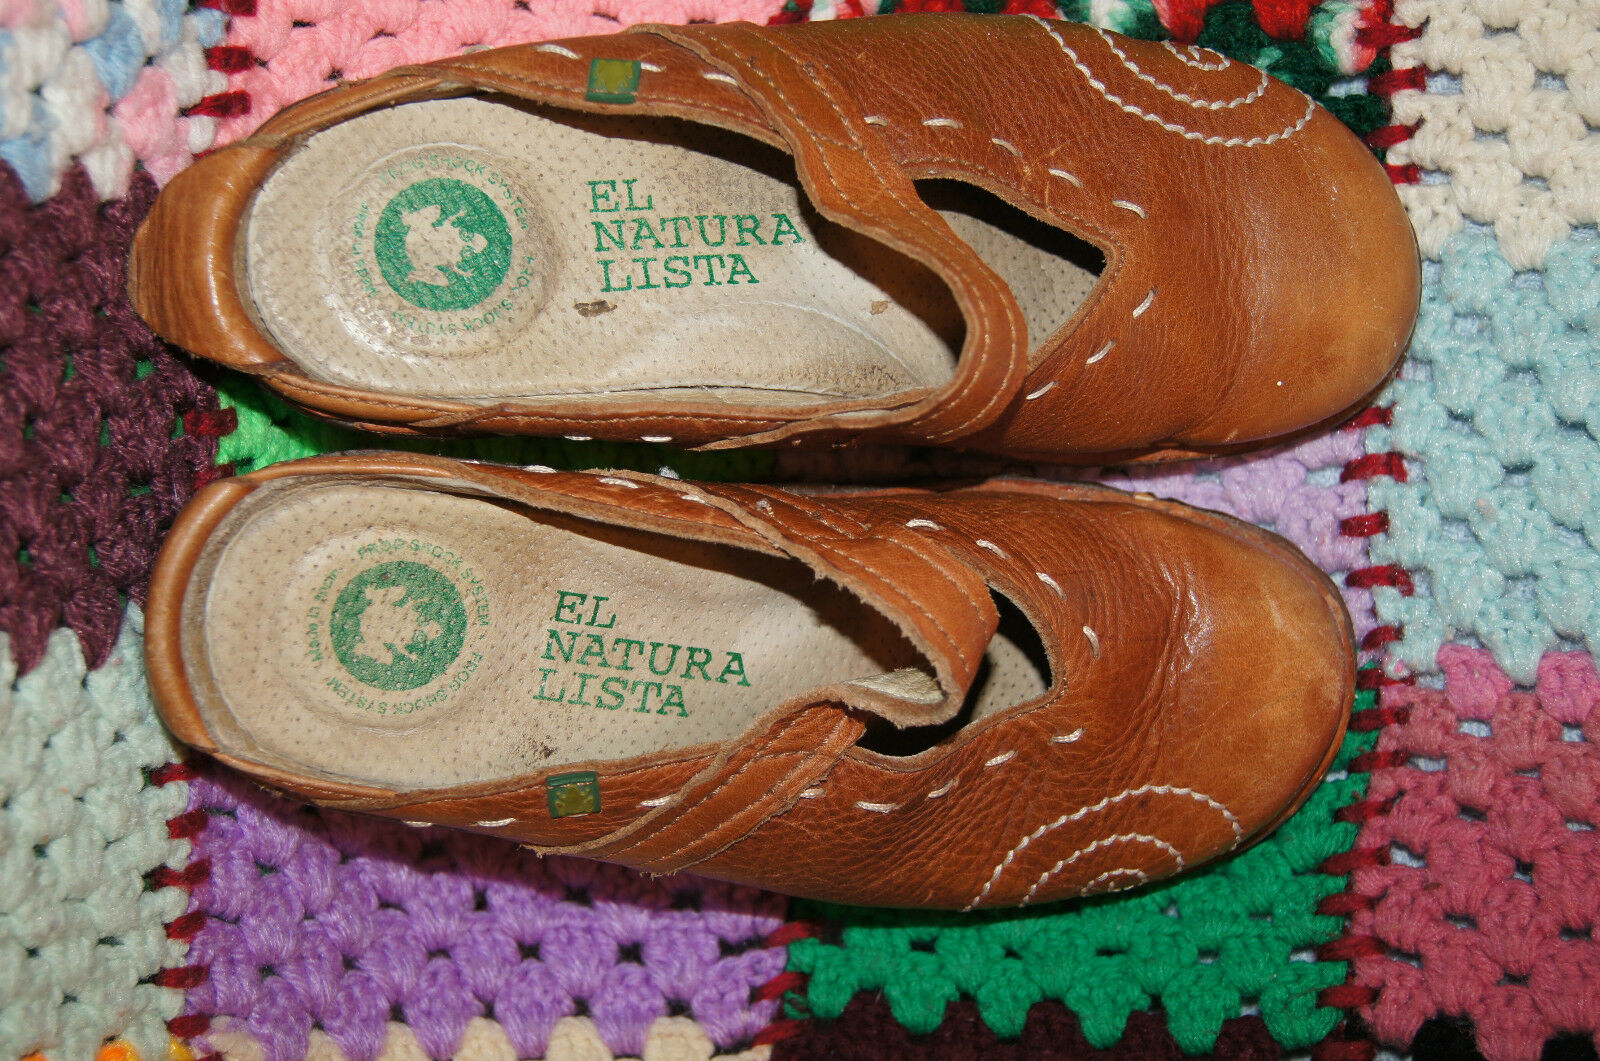 EL NATURALISTA Scarpe SIZE 38 7.5 - 8 LEATHER 8 LOAFERS SLIP ONS 8 LEATHER EL NATURA LISTA 0d6c2b